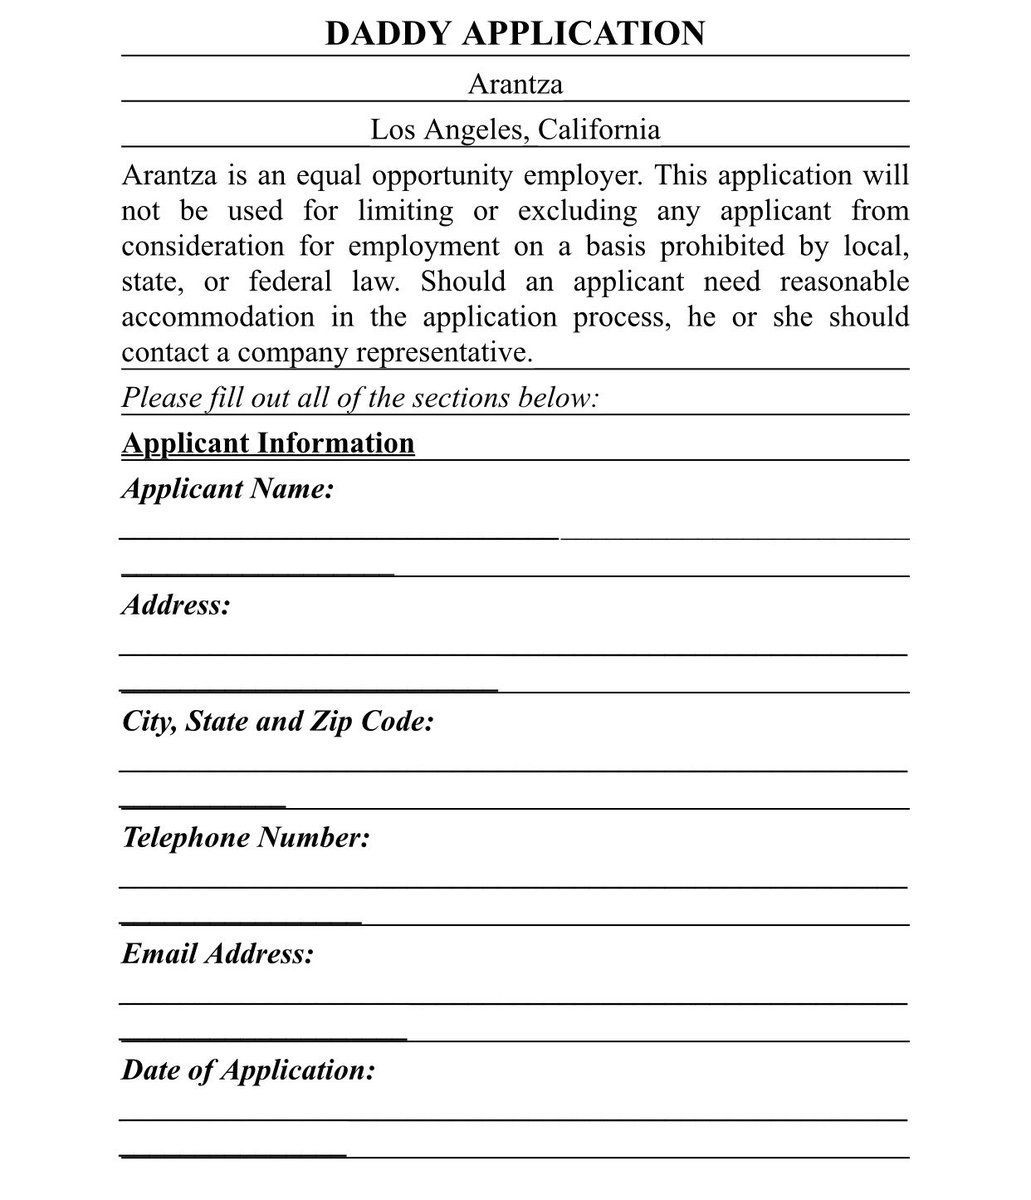 This Application Form Is The Perfect Way To Screen